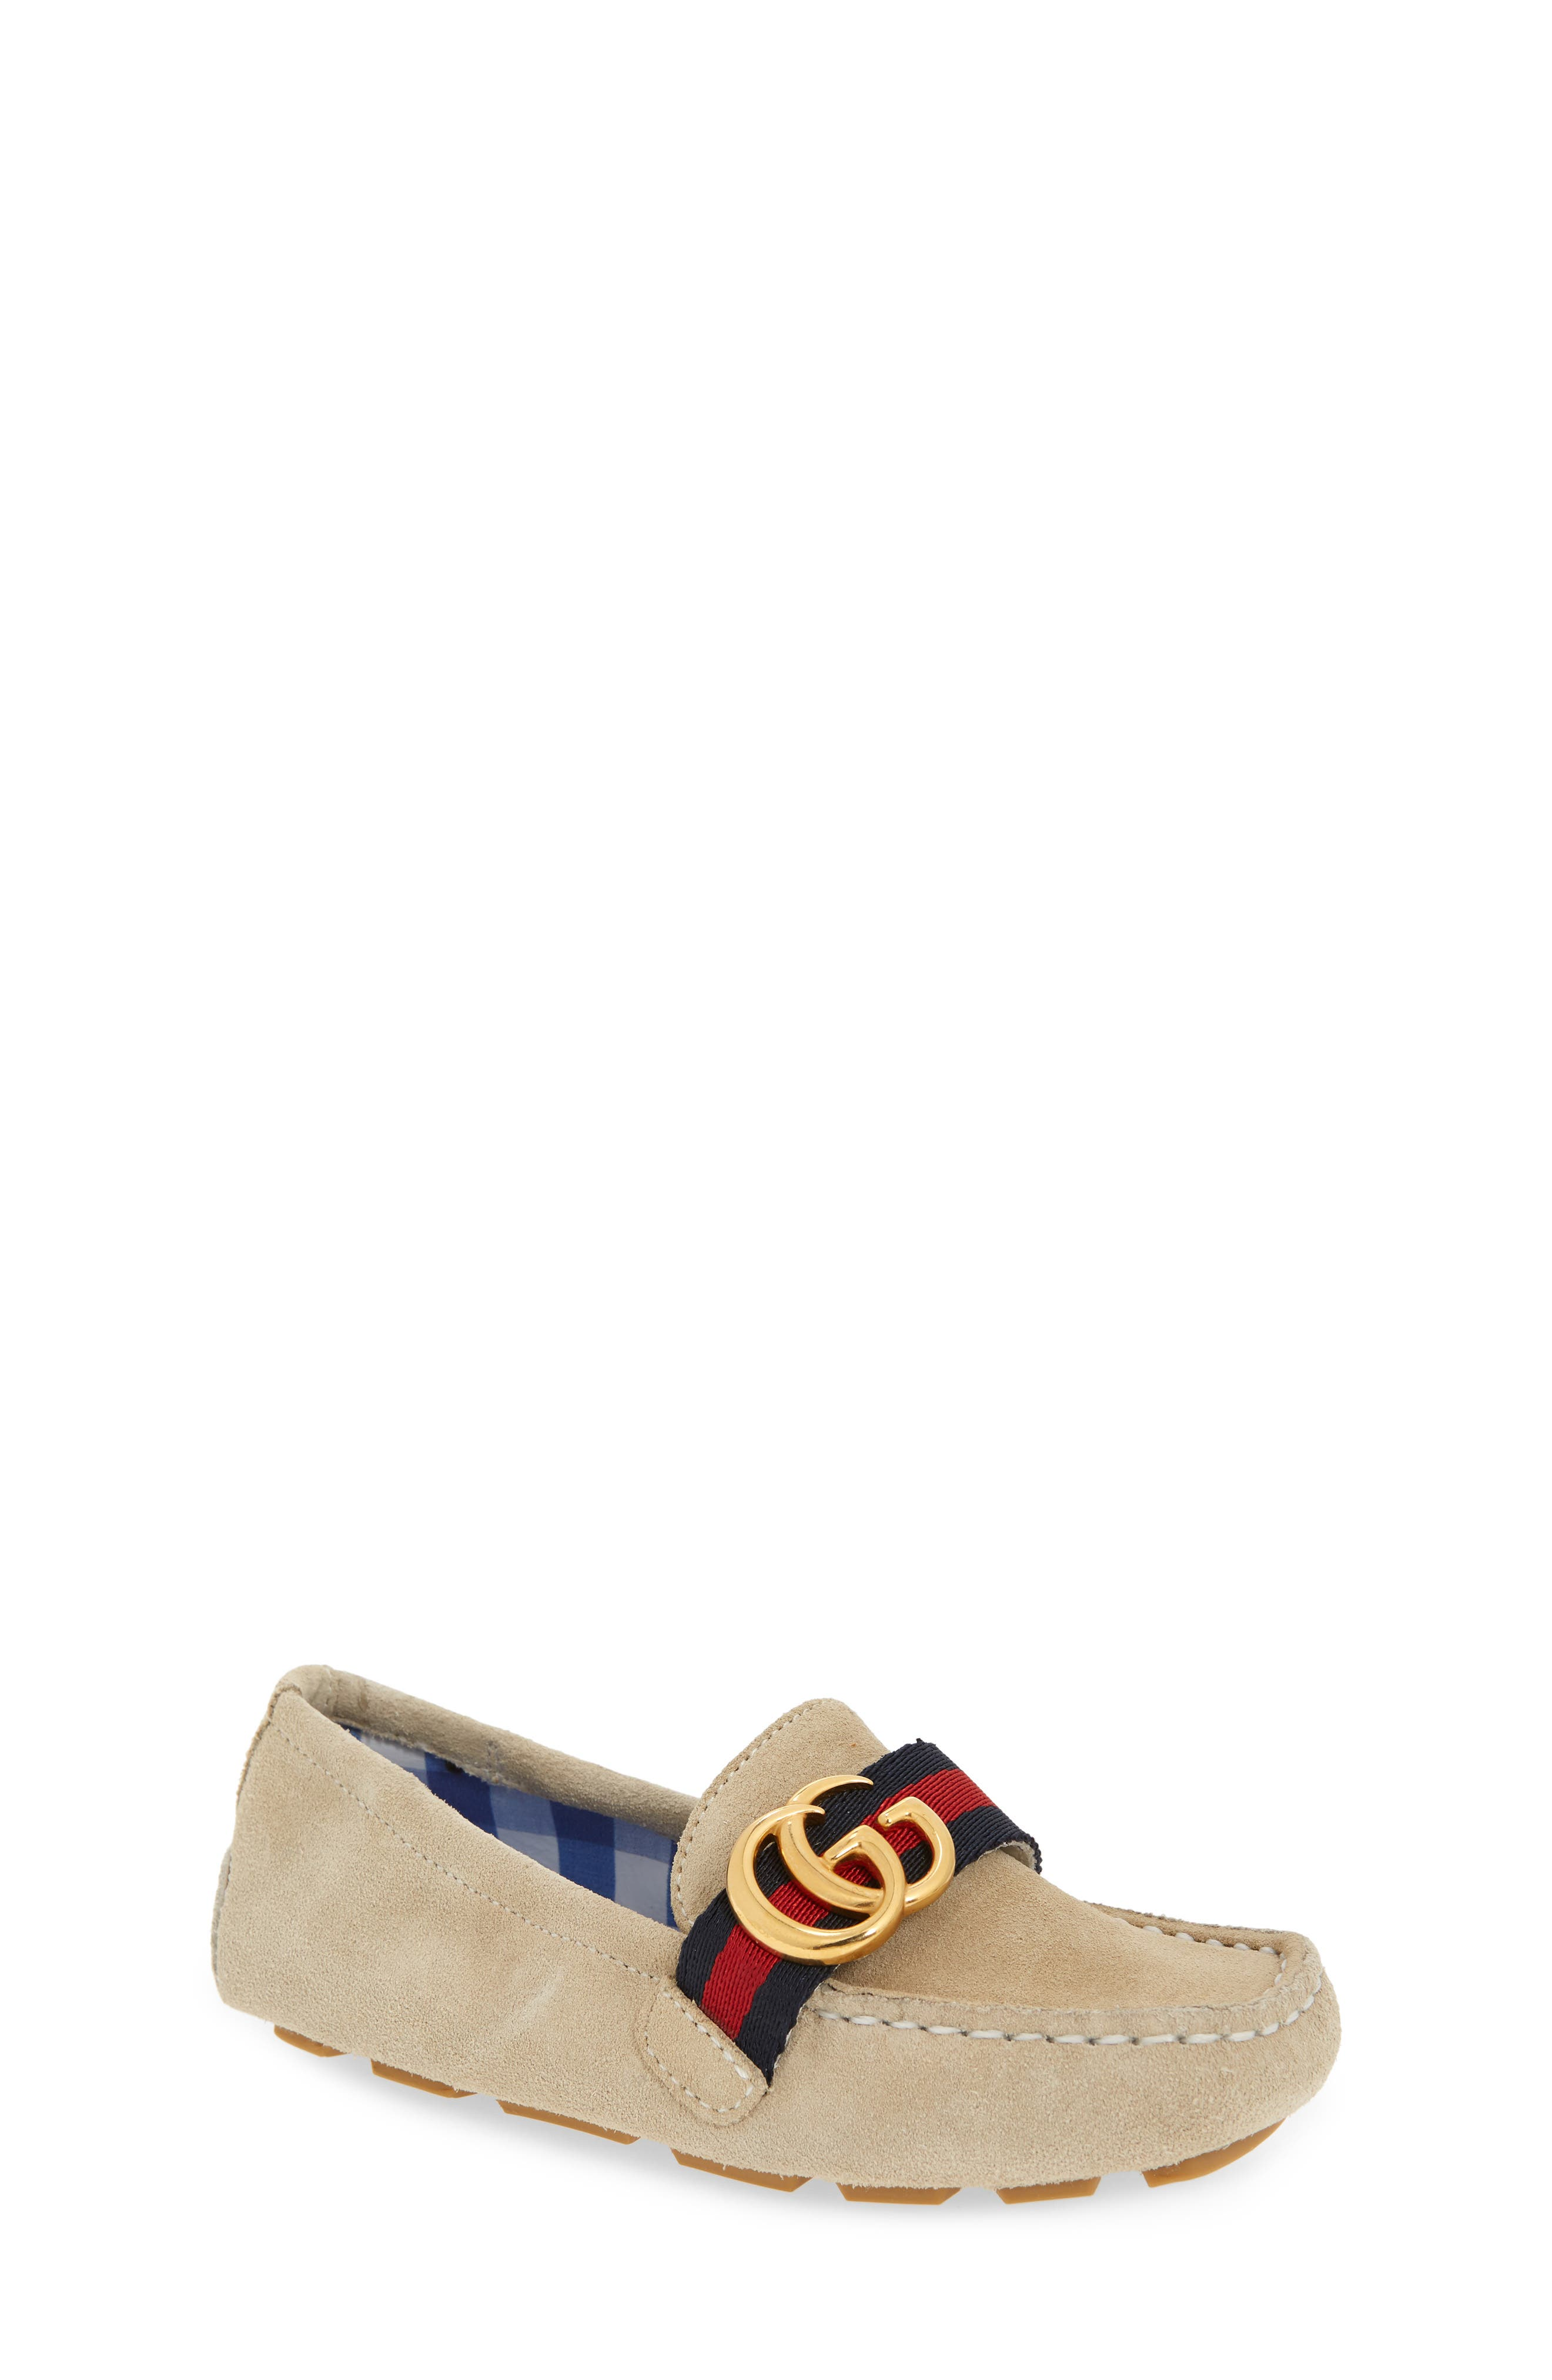 41aa554cc4 Boys Loafers - Shoes - Kids  Shoes and Boots to Buy Online